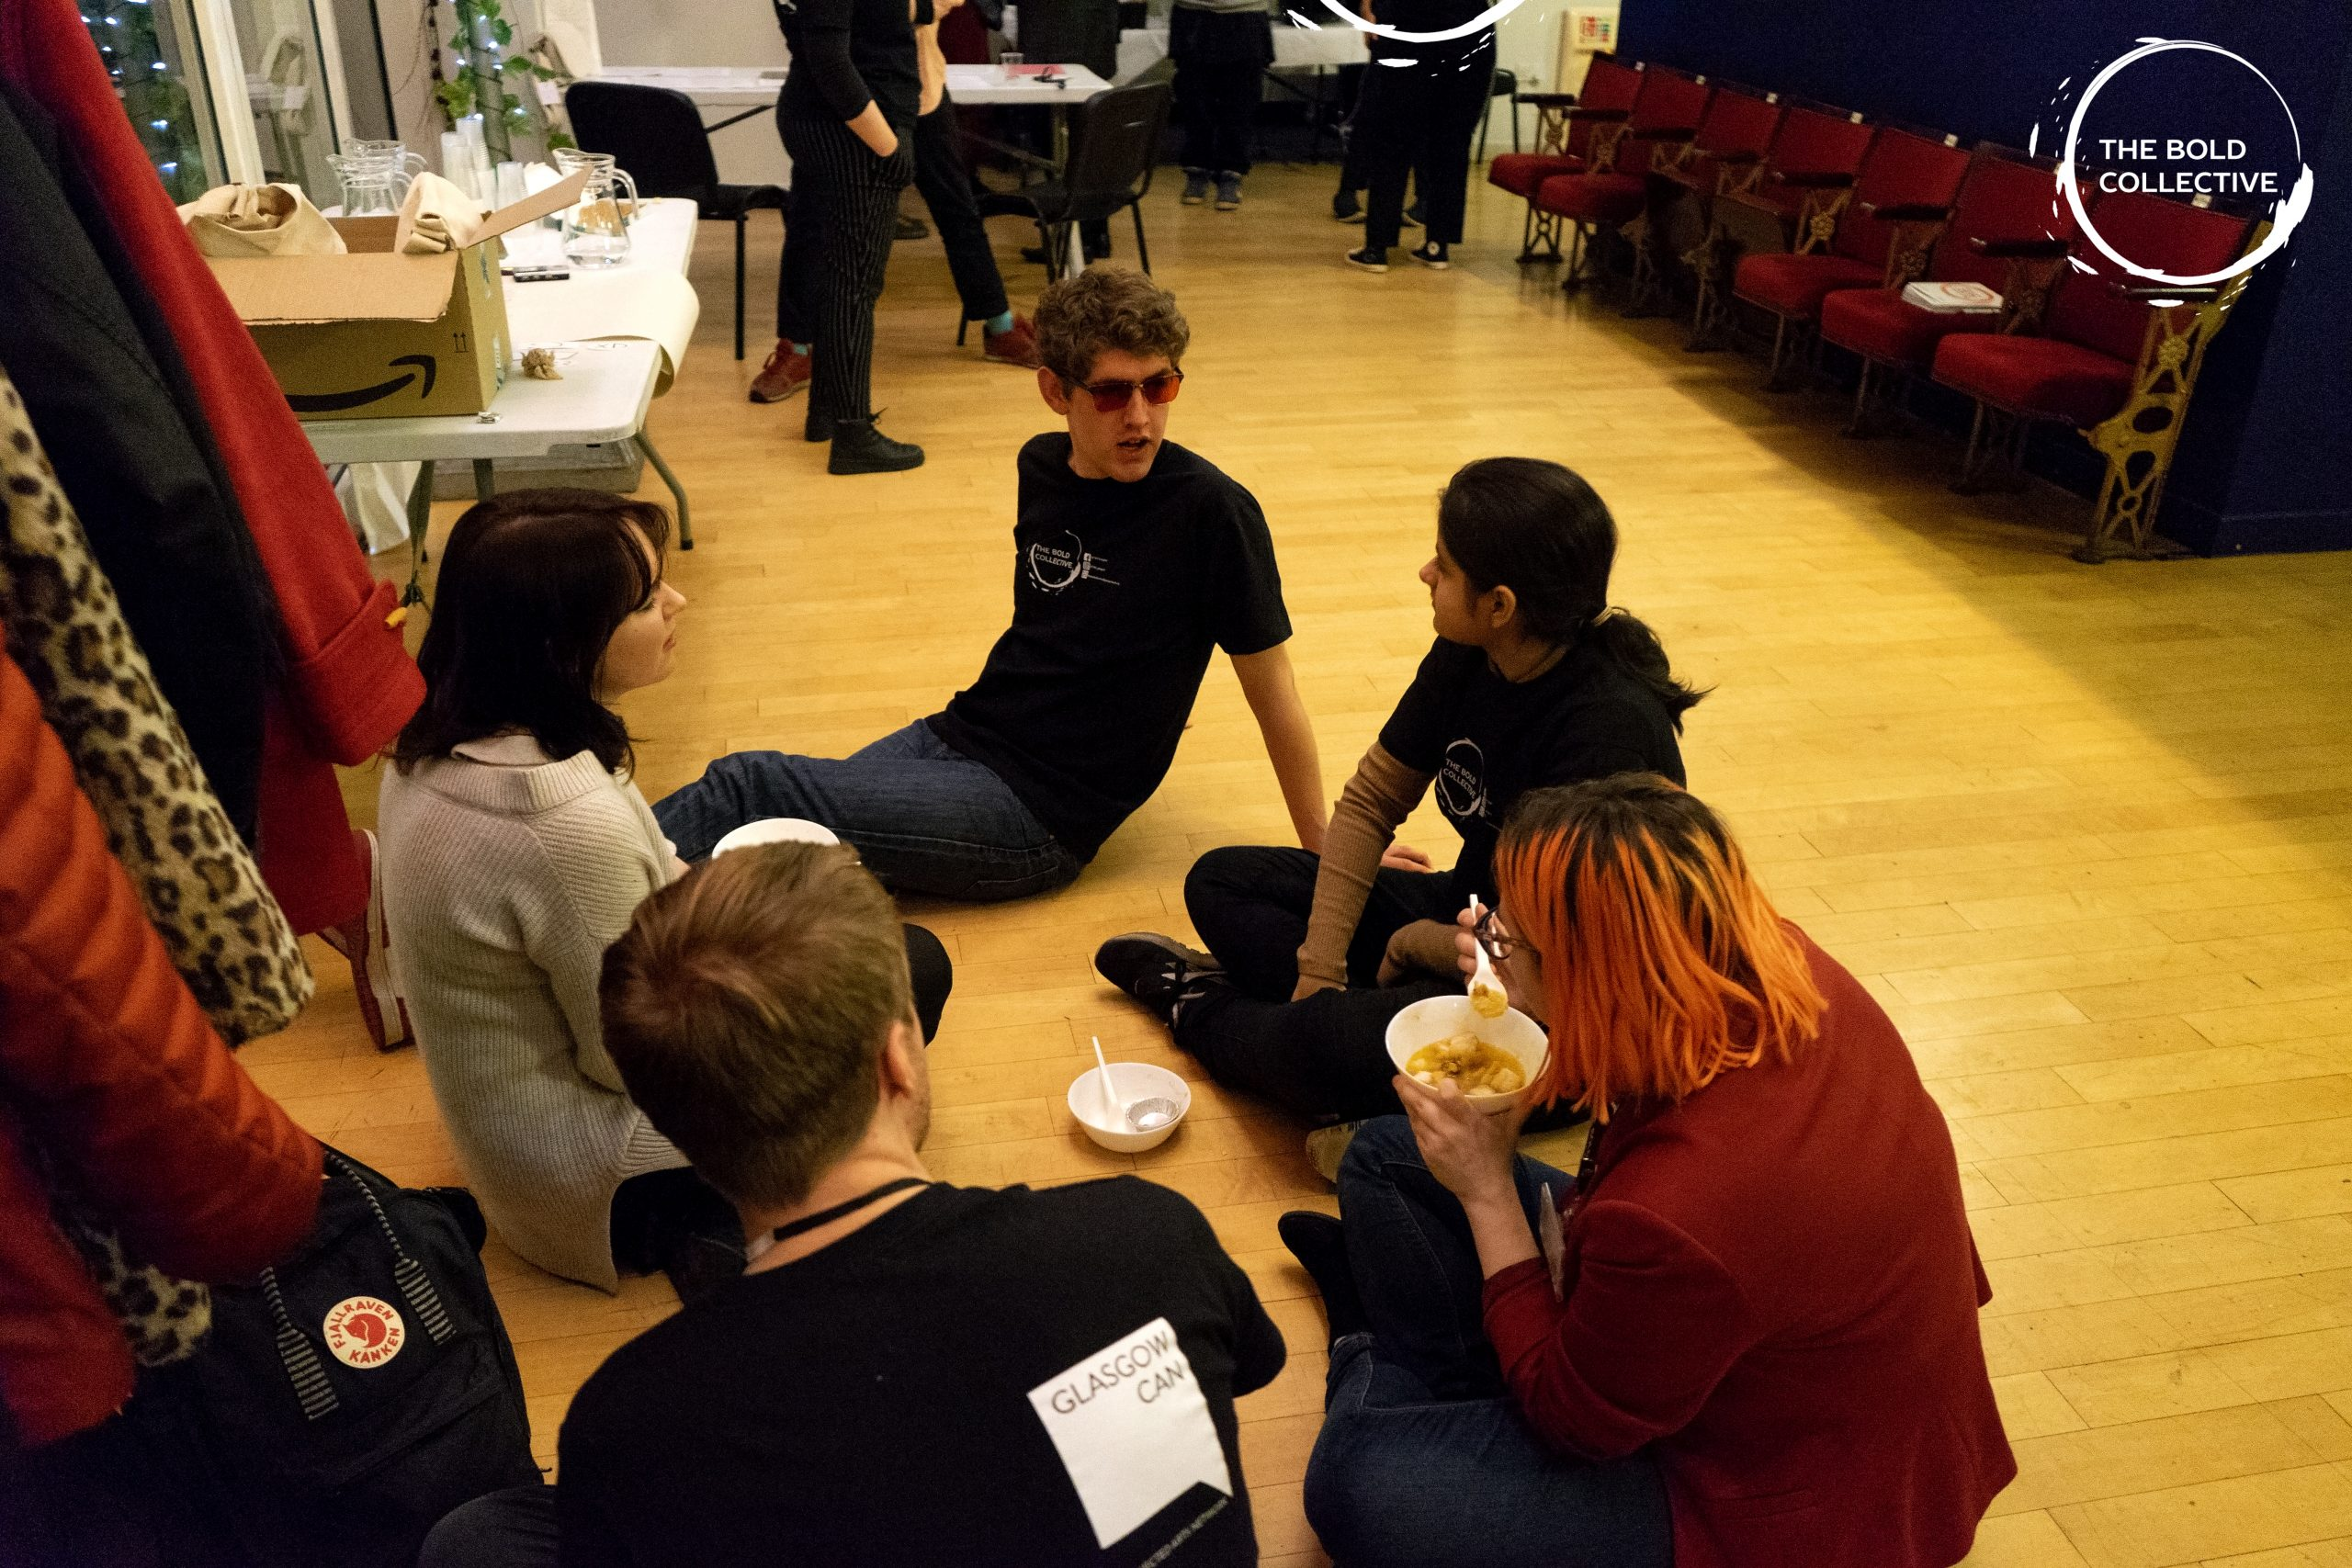 A group of five young people sit on the floor- relaxing, eating food and chatting.